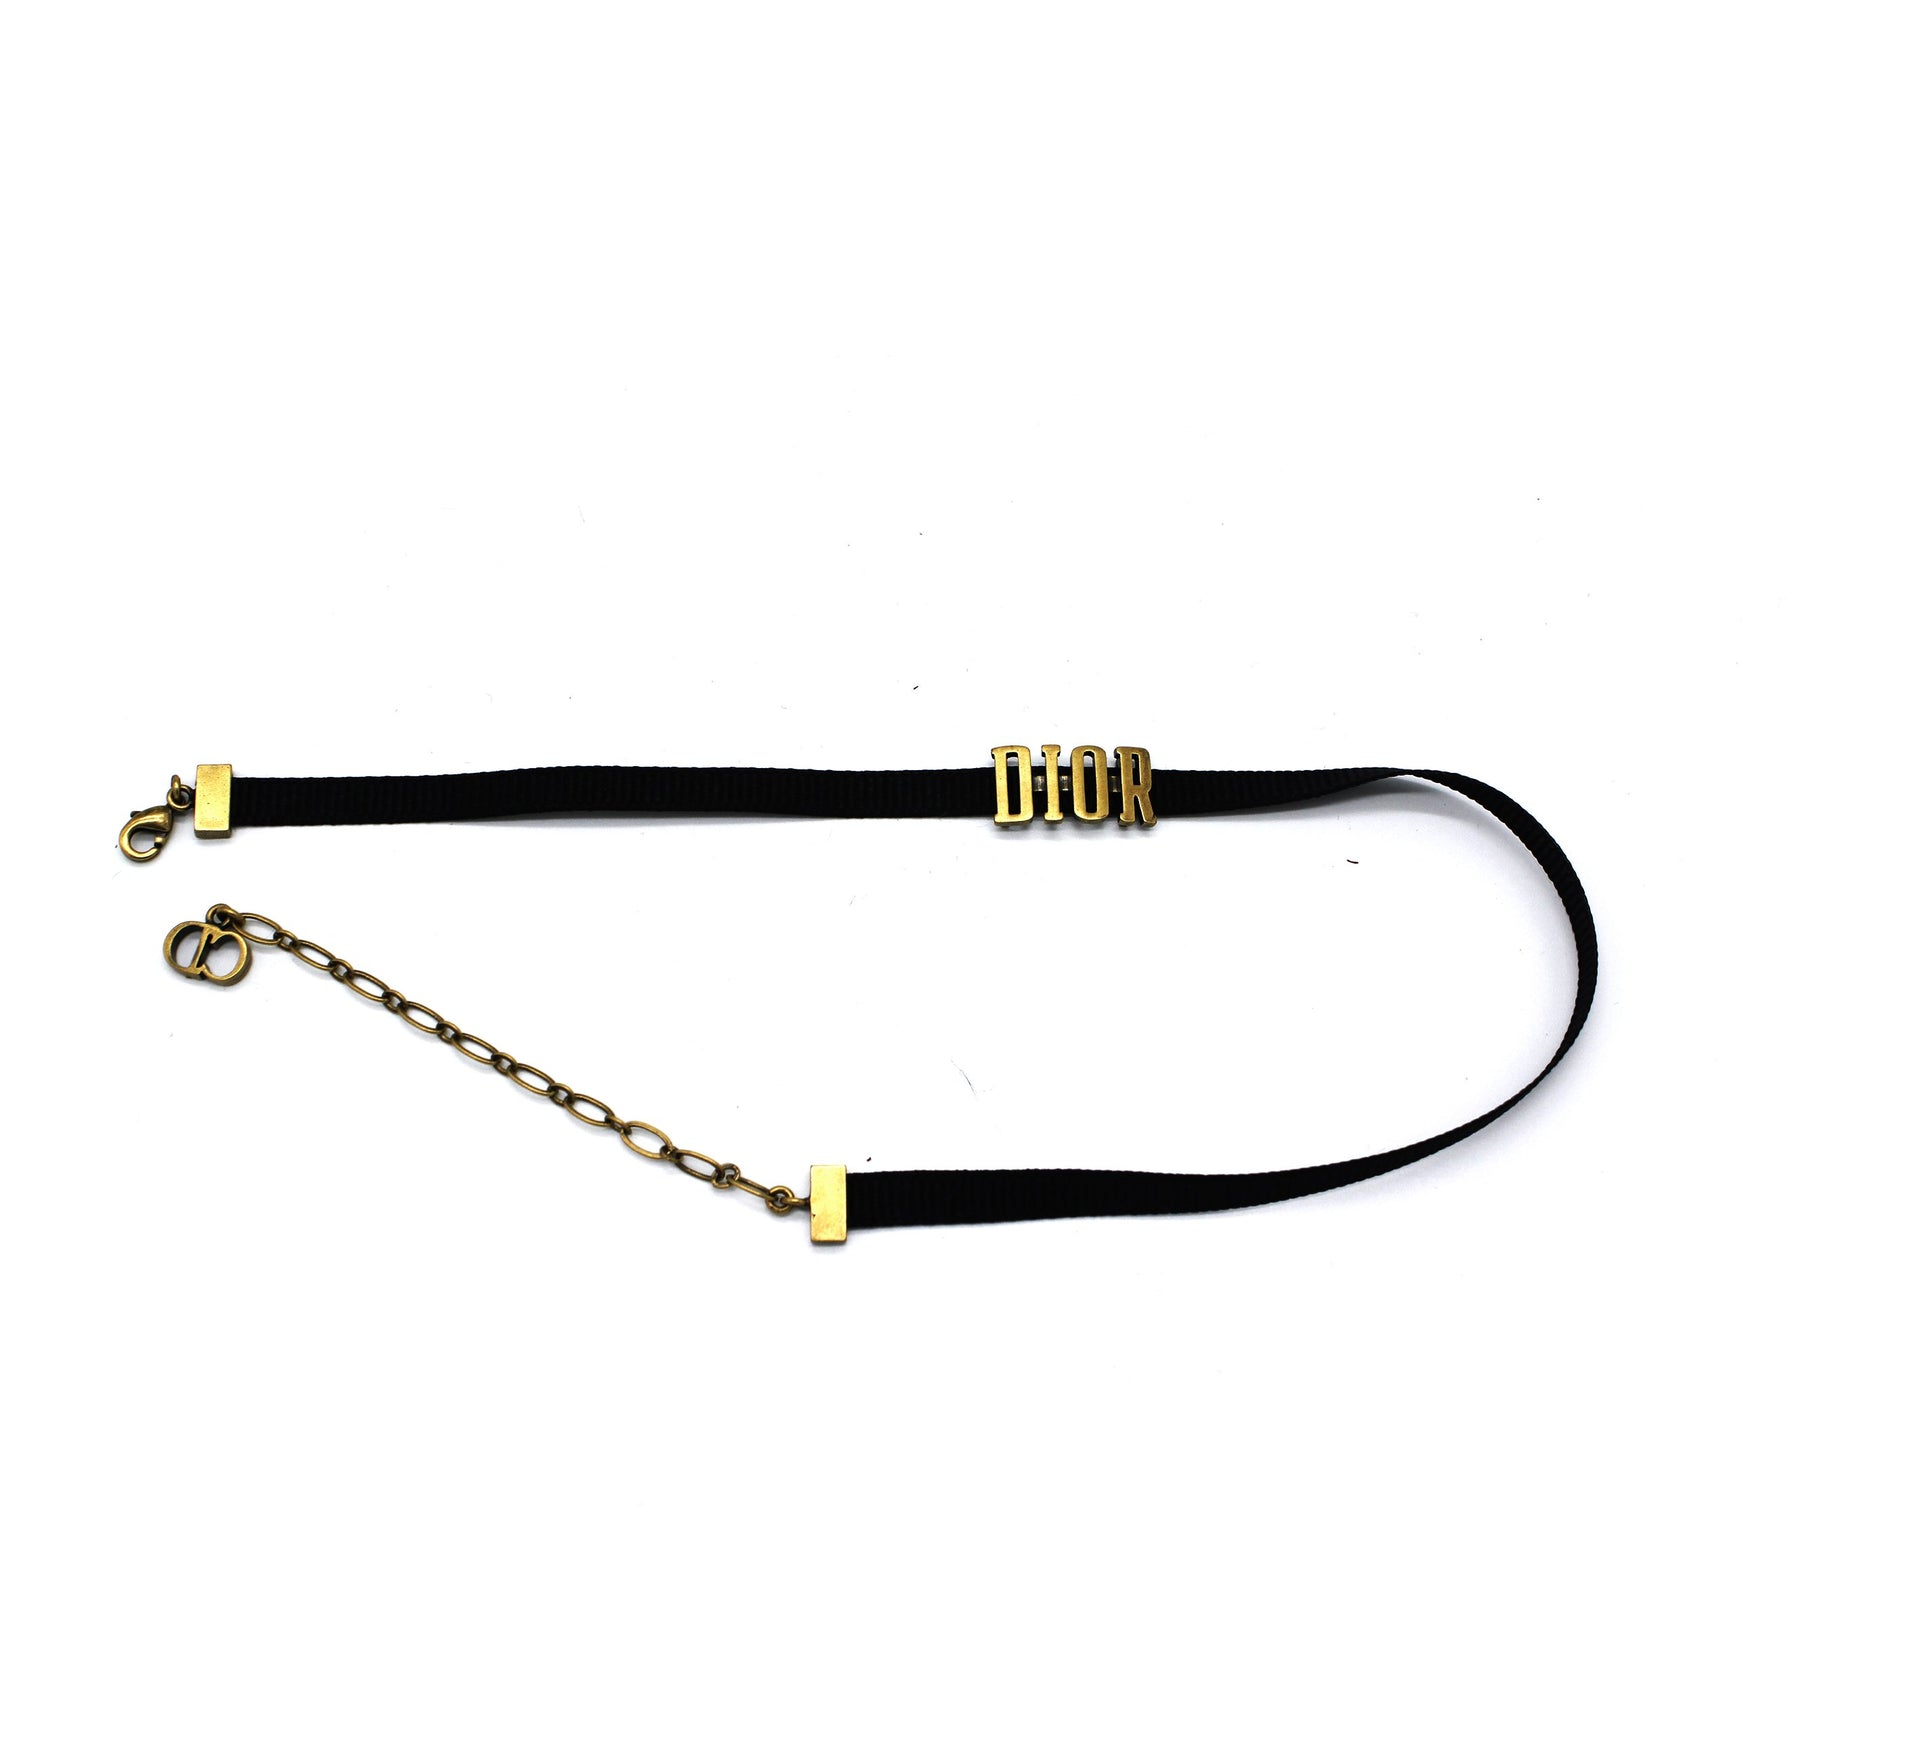 Dior 'Diorevolution' Choker in God-tone Metal